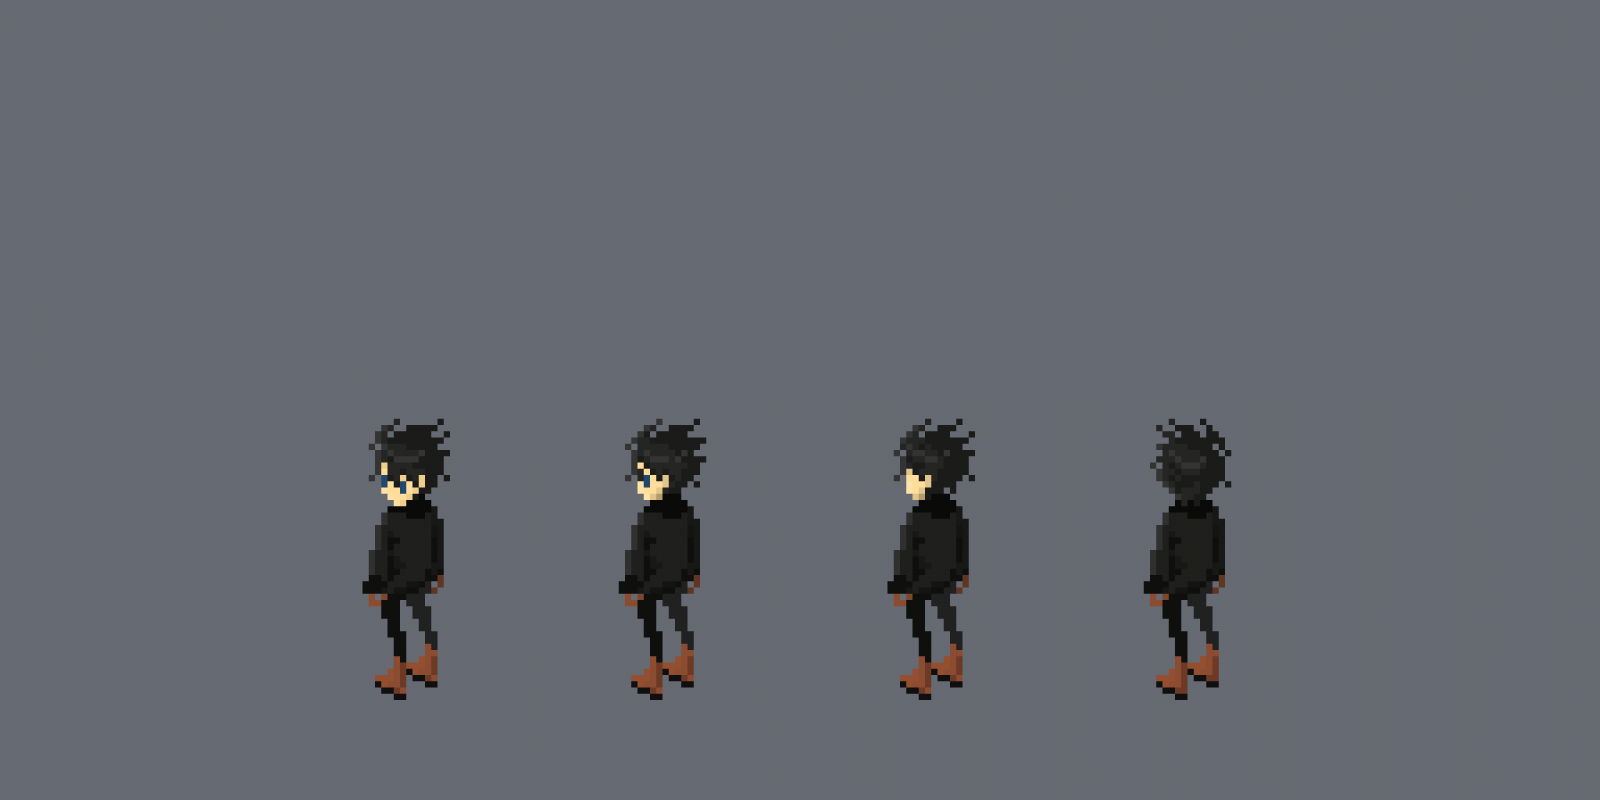 Sprite-0030.png